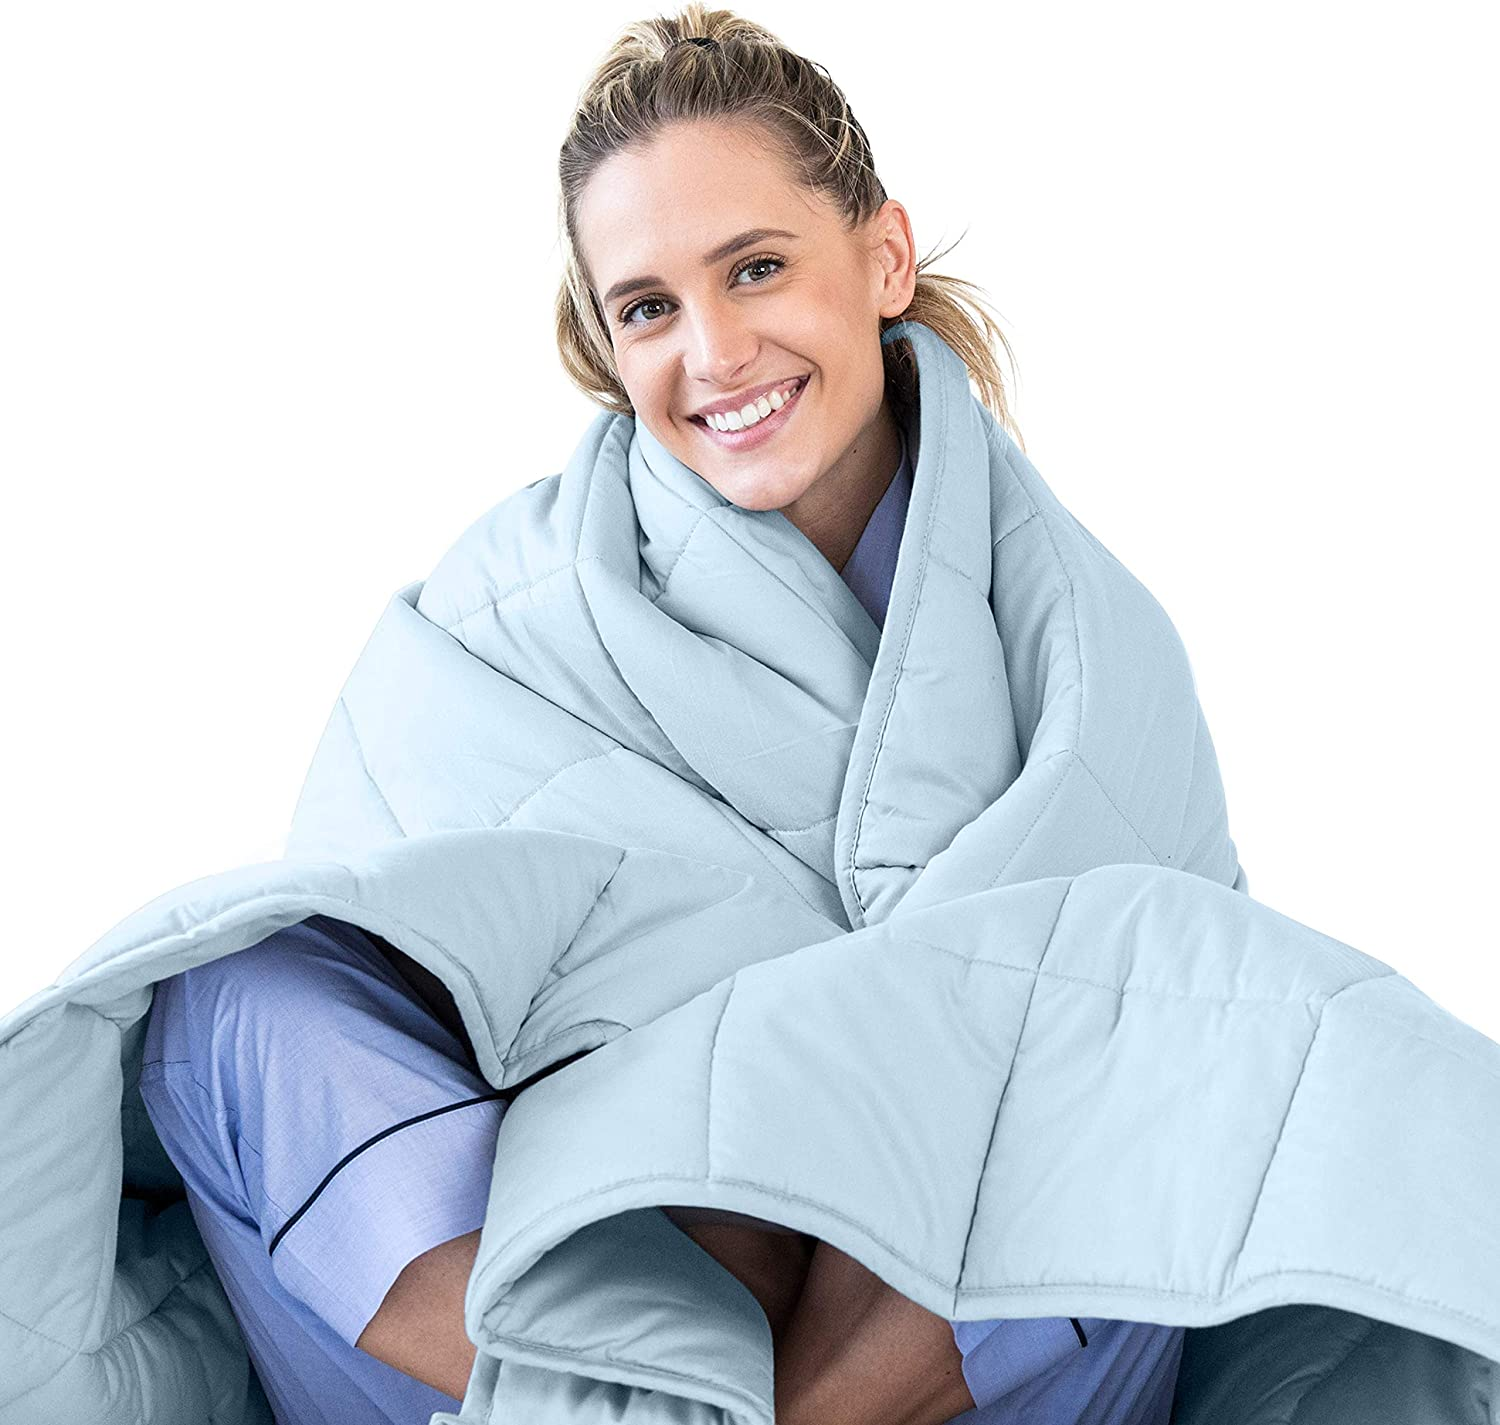 LUNA Adult Weighted Blanket | Individual Use - 15 lbs - 60x80 - Queen Size Bed | 100% Oeko-Tex Certified Cooling Cotton & Glass Beads | USA Designed | Heavy Cool Weight | Light Blue